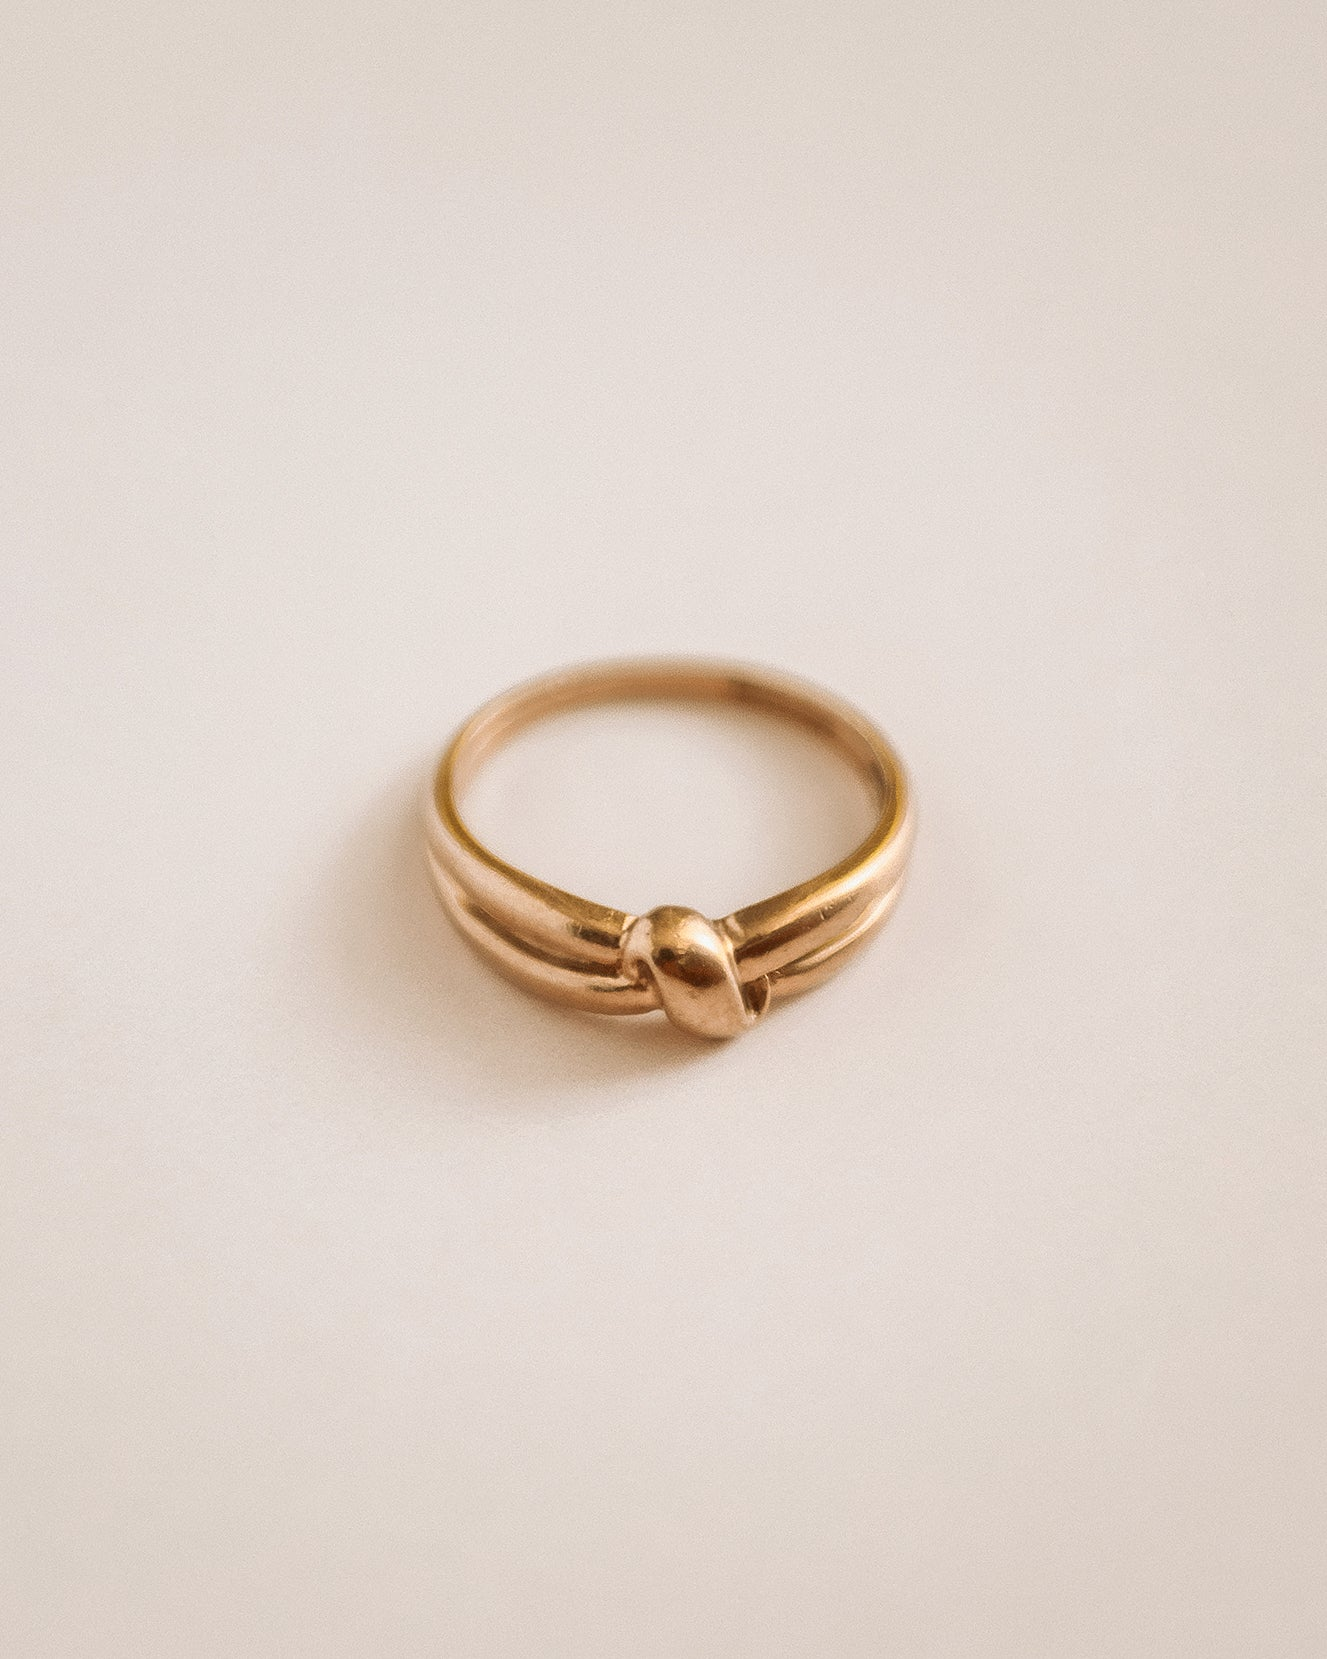 Image of Maude 9ct Gold Knot Band Ring